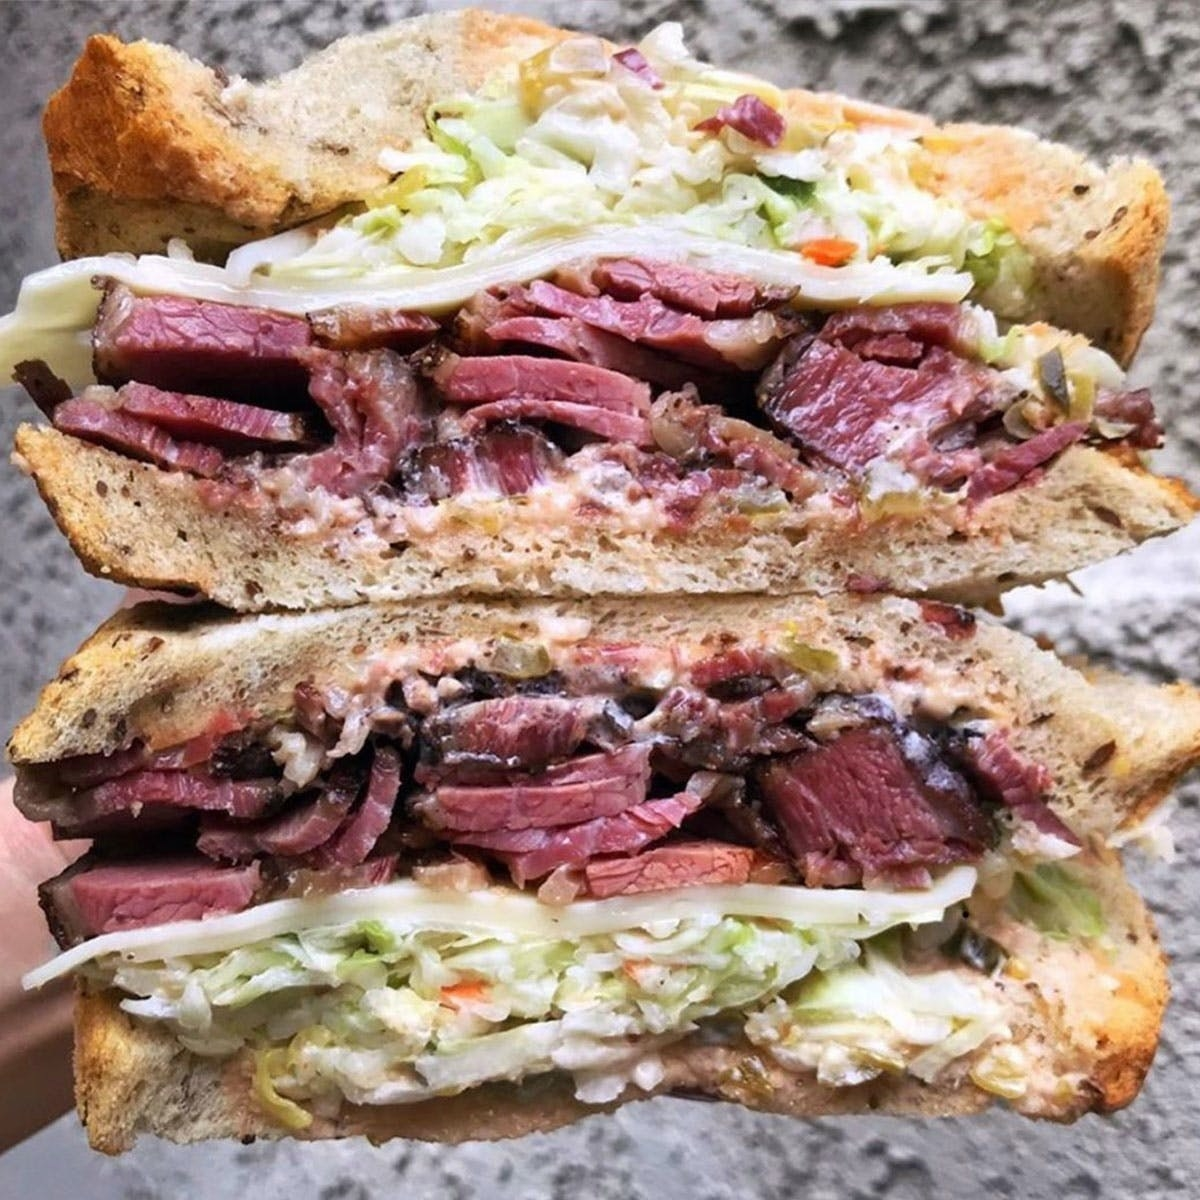 Two halves of a Langer's Original #19 on Jewish Rye bread, stuffed with pastrami, coleslaw, and mayo.